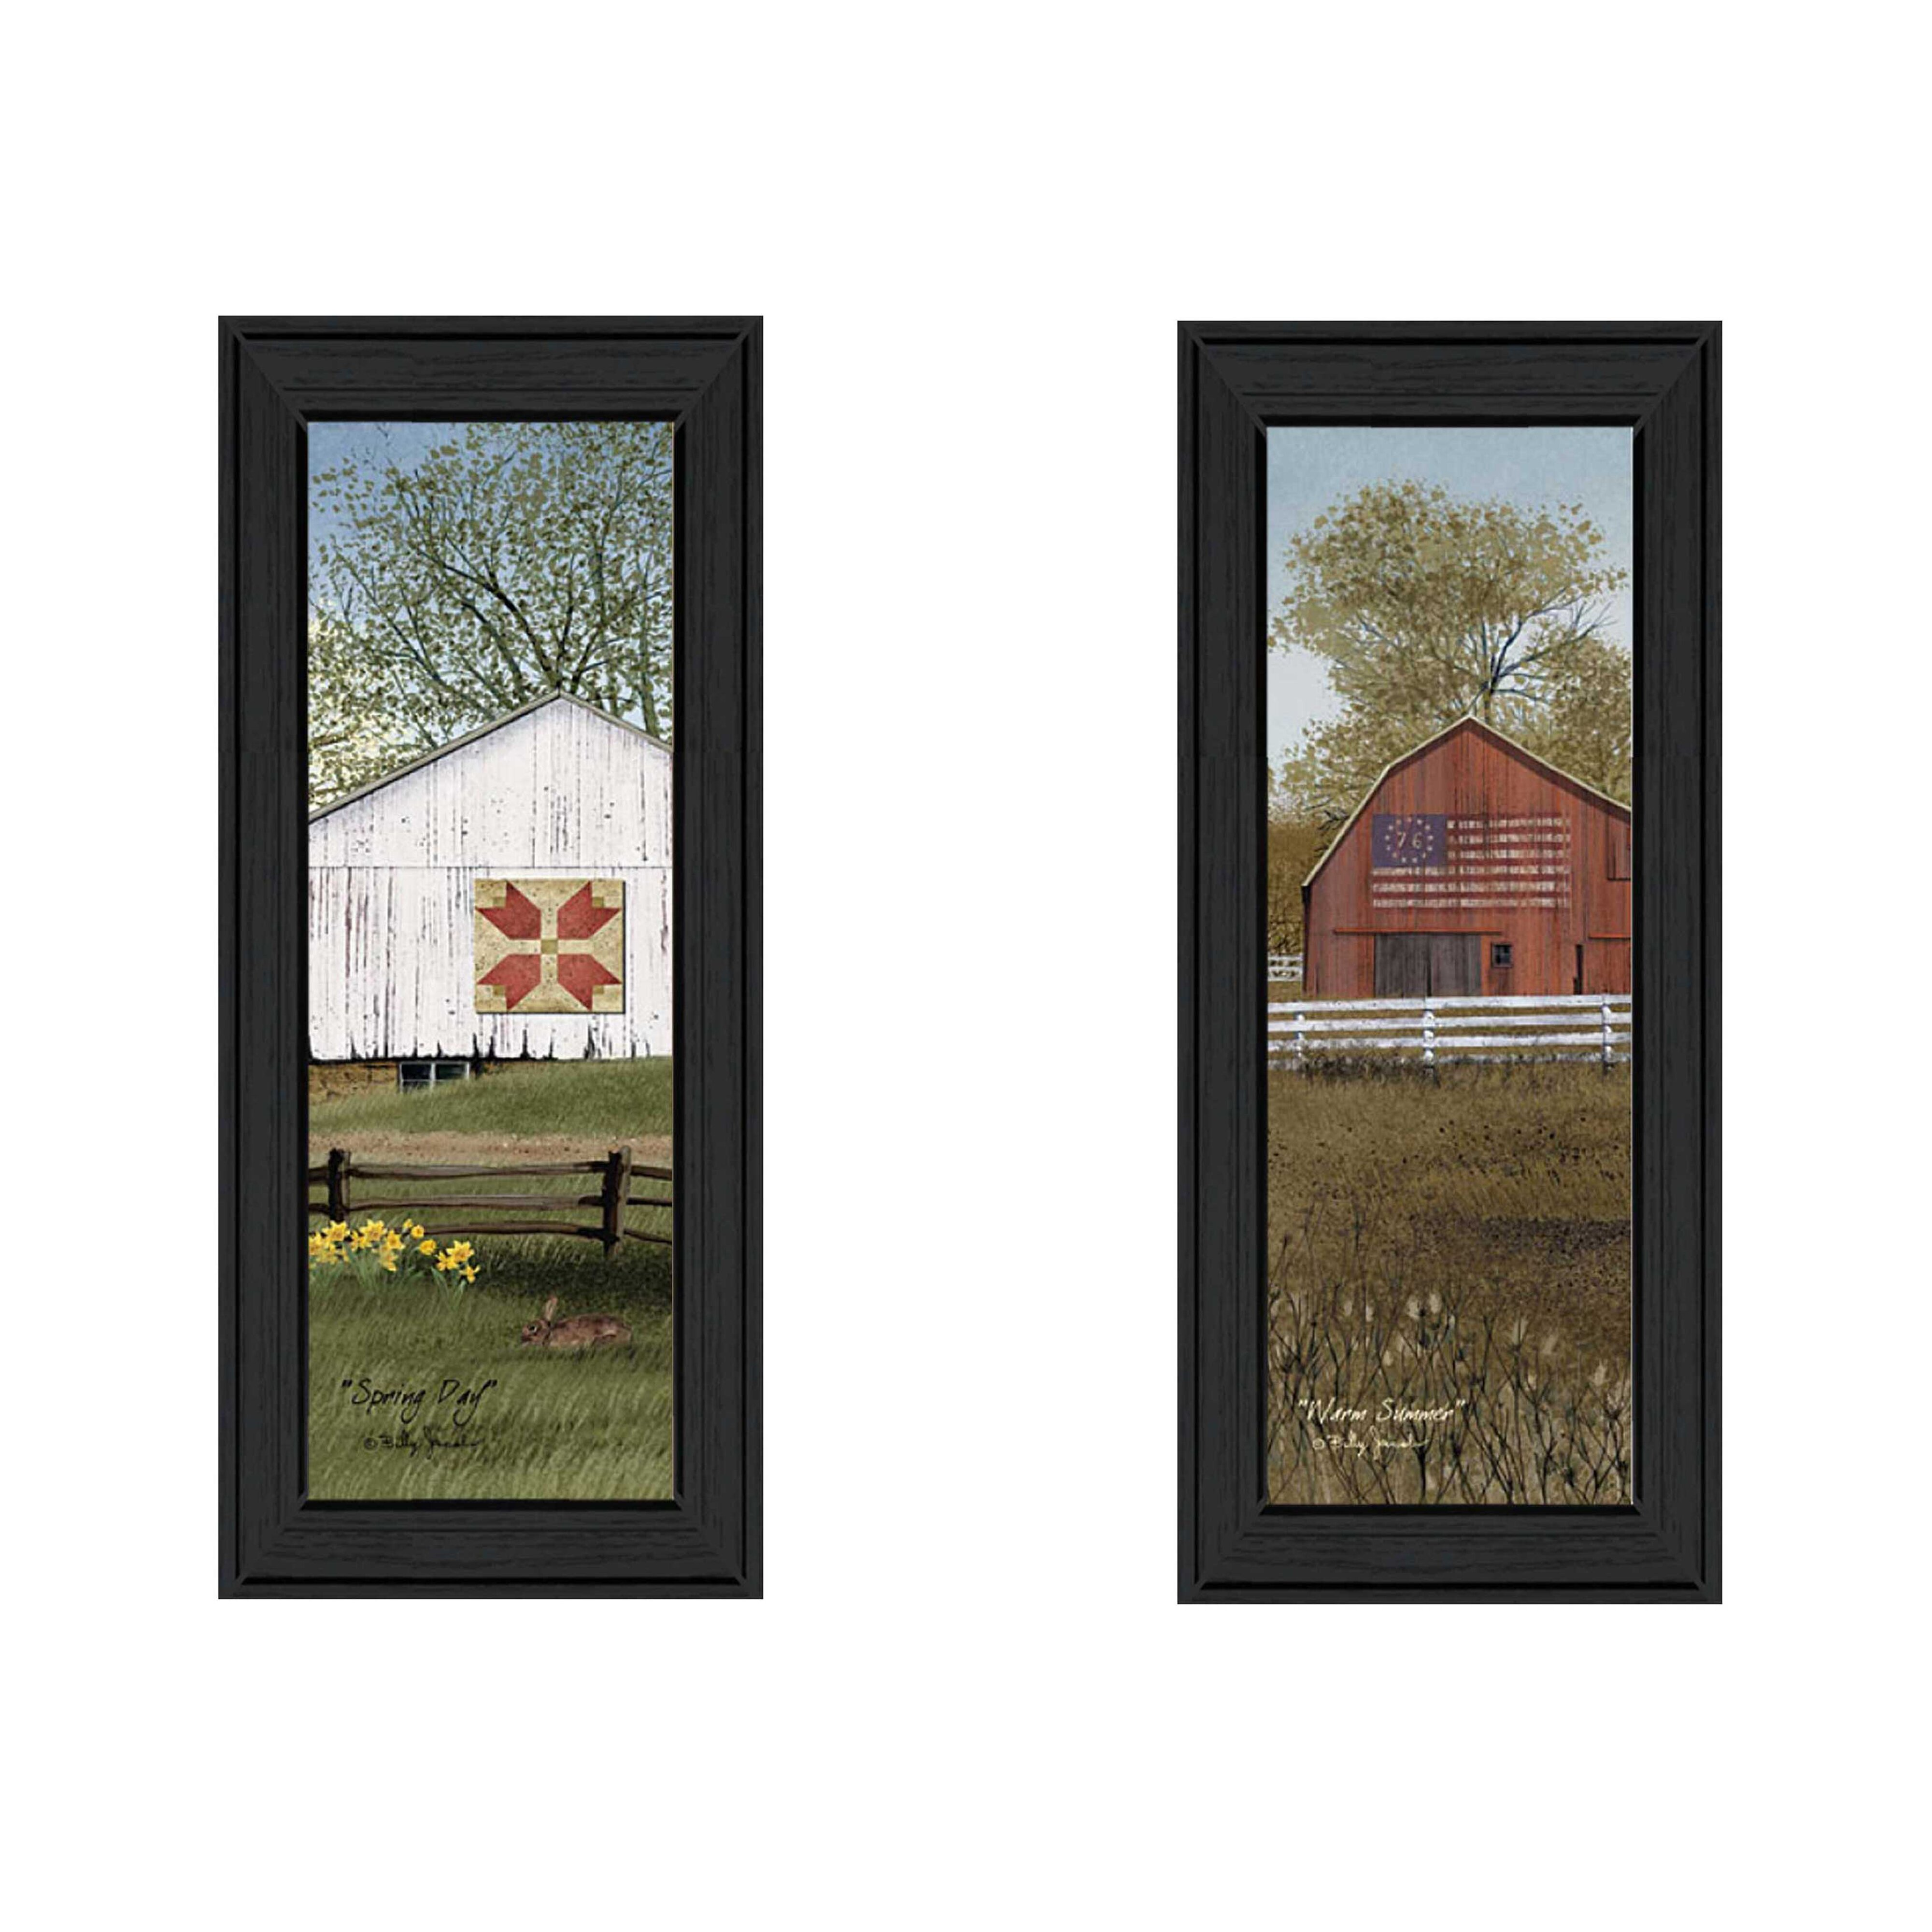 Trendy decor 4u 39 country barns 39 by billy jacobs 2 piece for Home decor 4 u